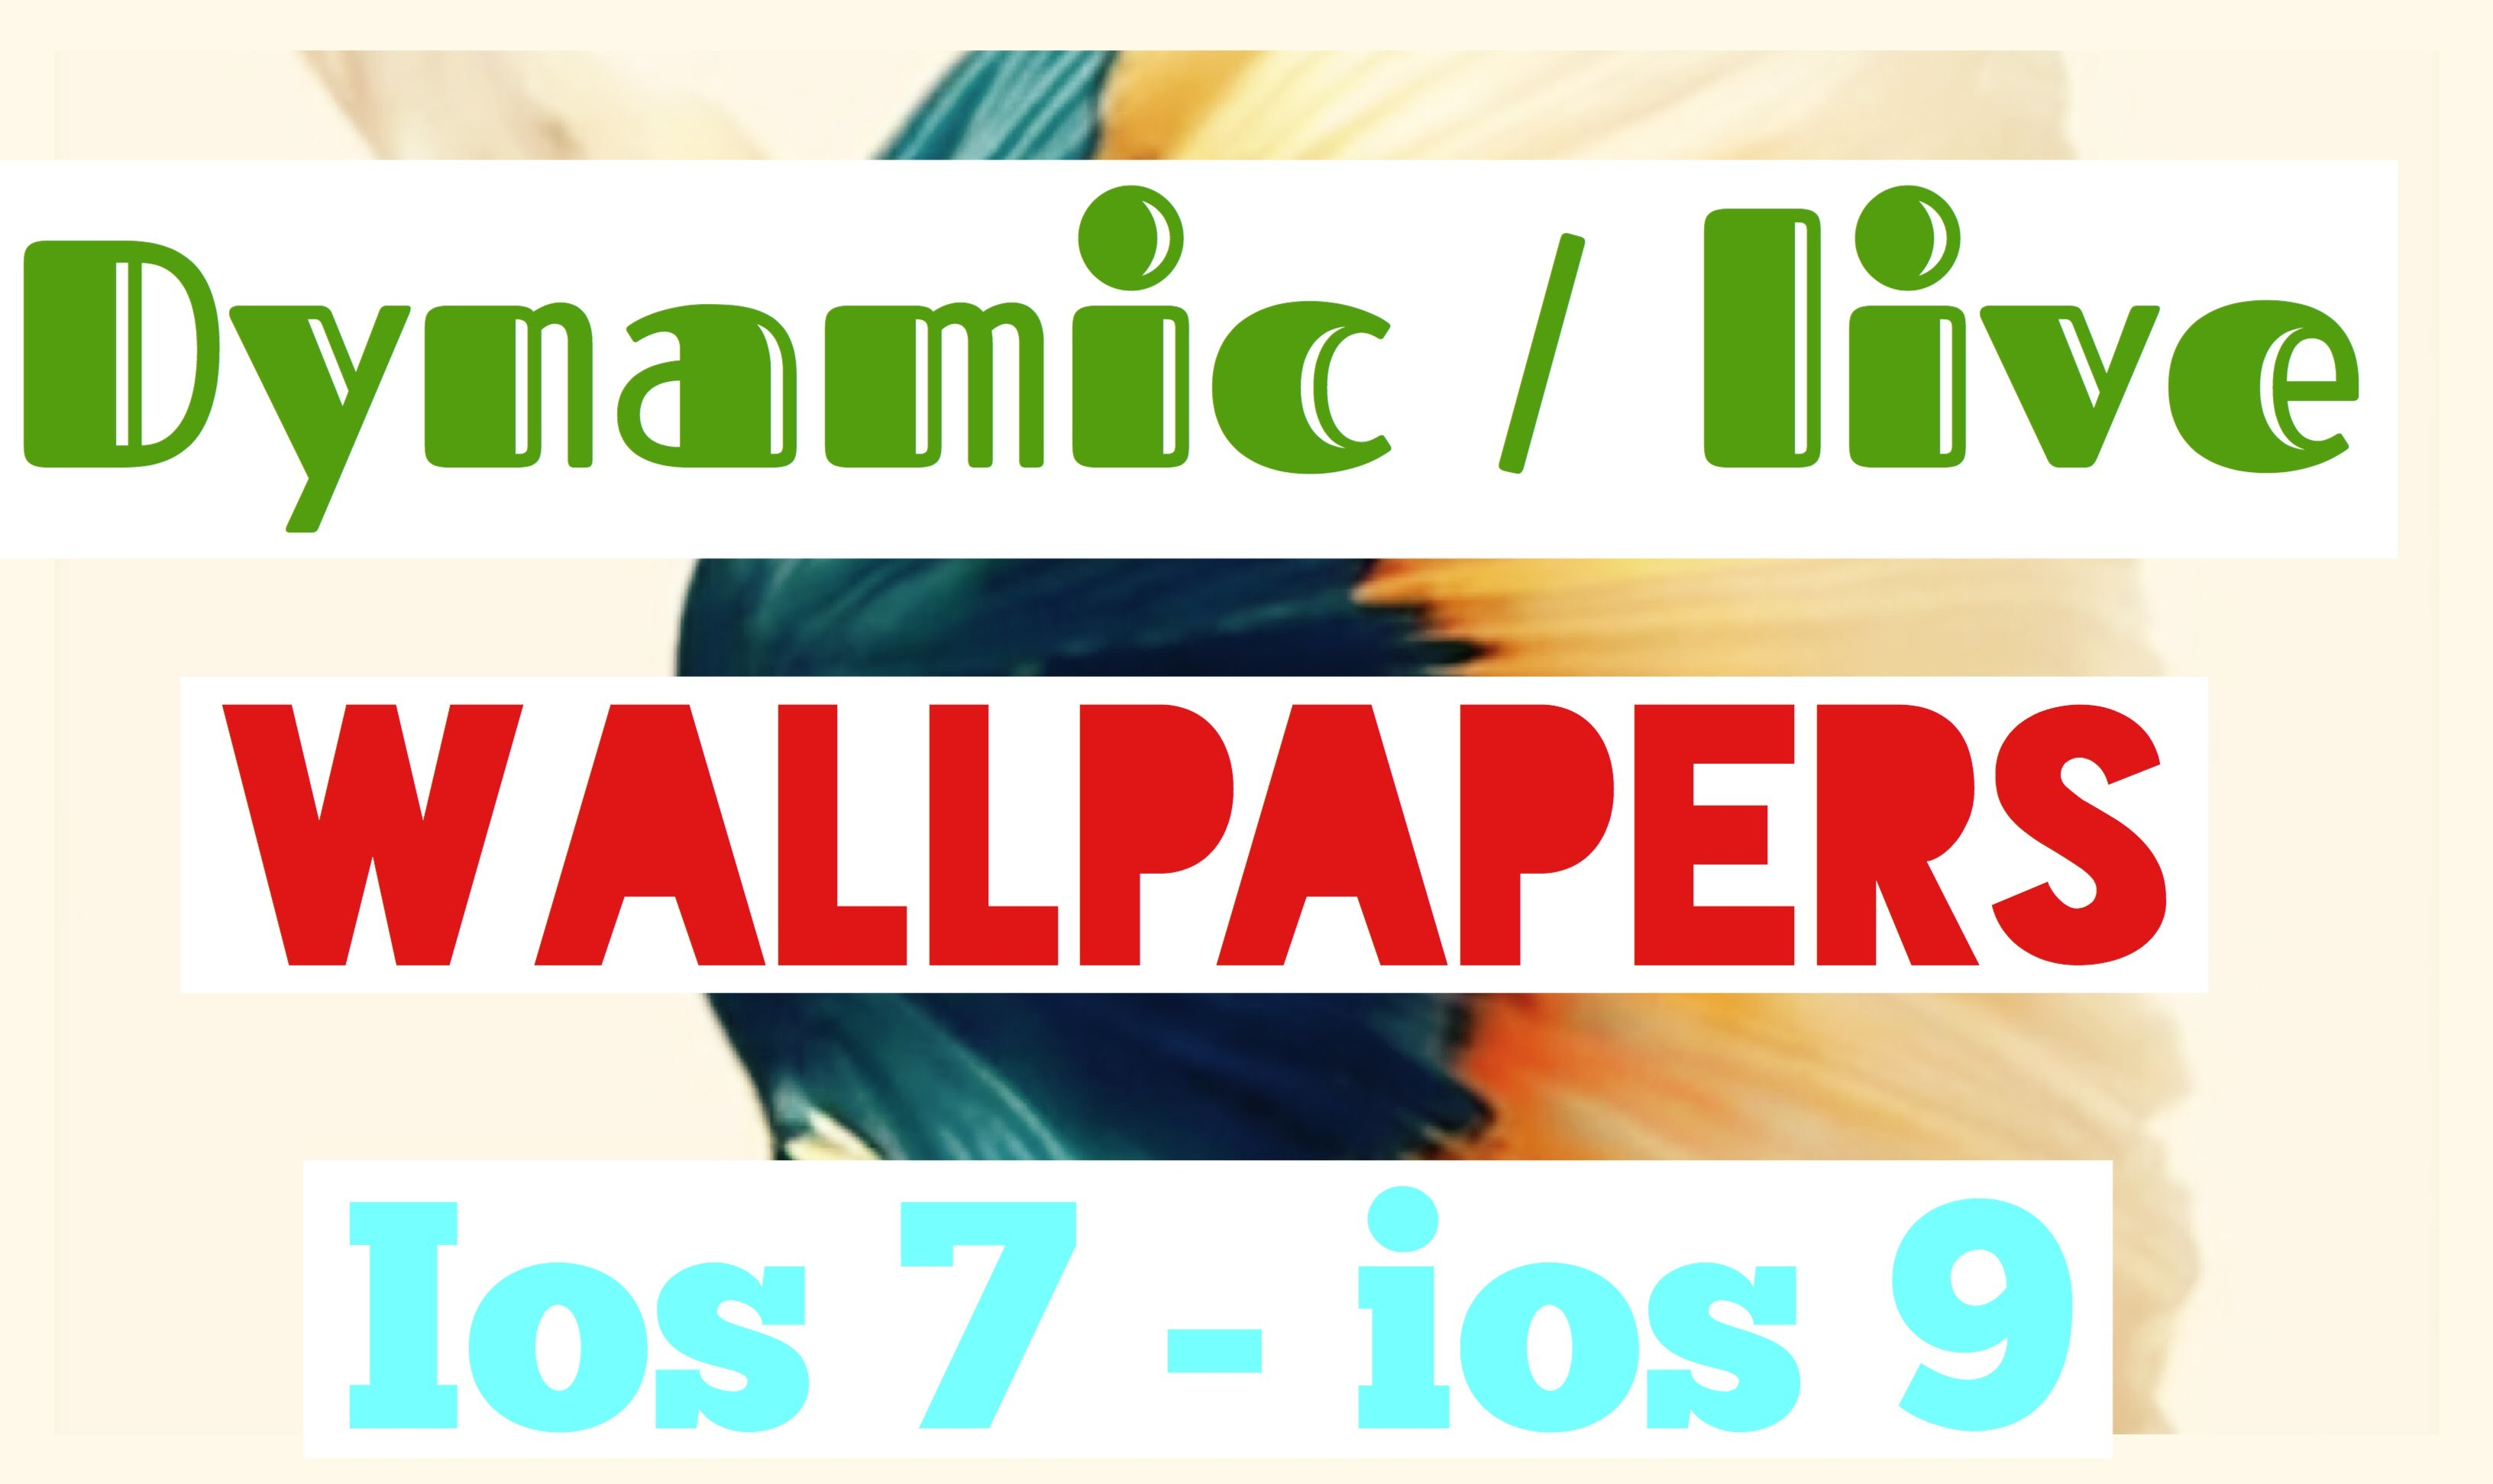 Res: 3264x1943, how to get new dynamic/live/animated wallpapers on iphone ipad ipod (ALL IOS  SUPPORTED)